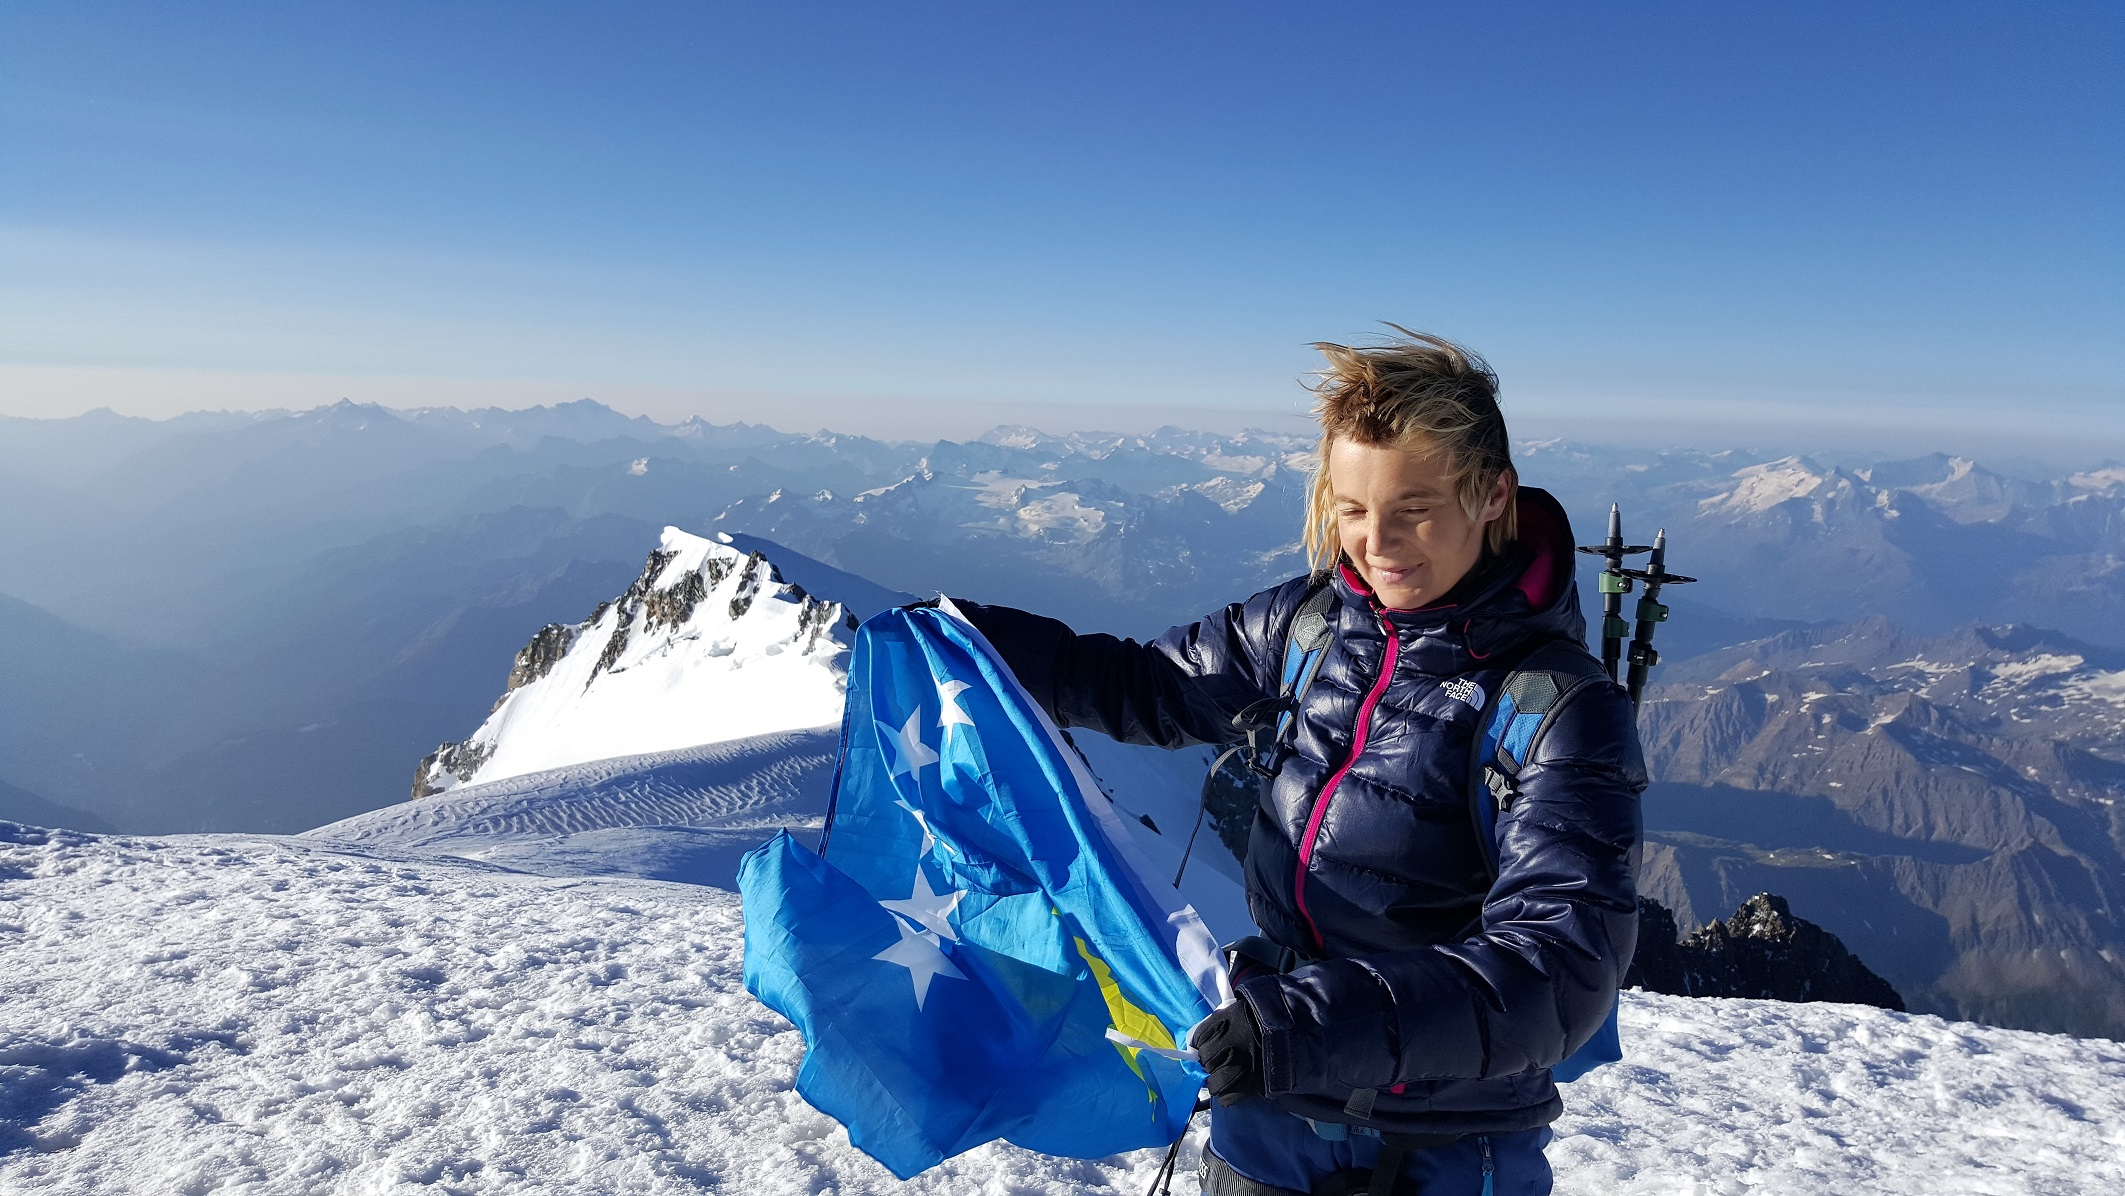 Mount Blanc Expedition